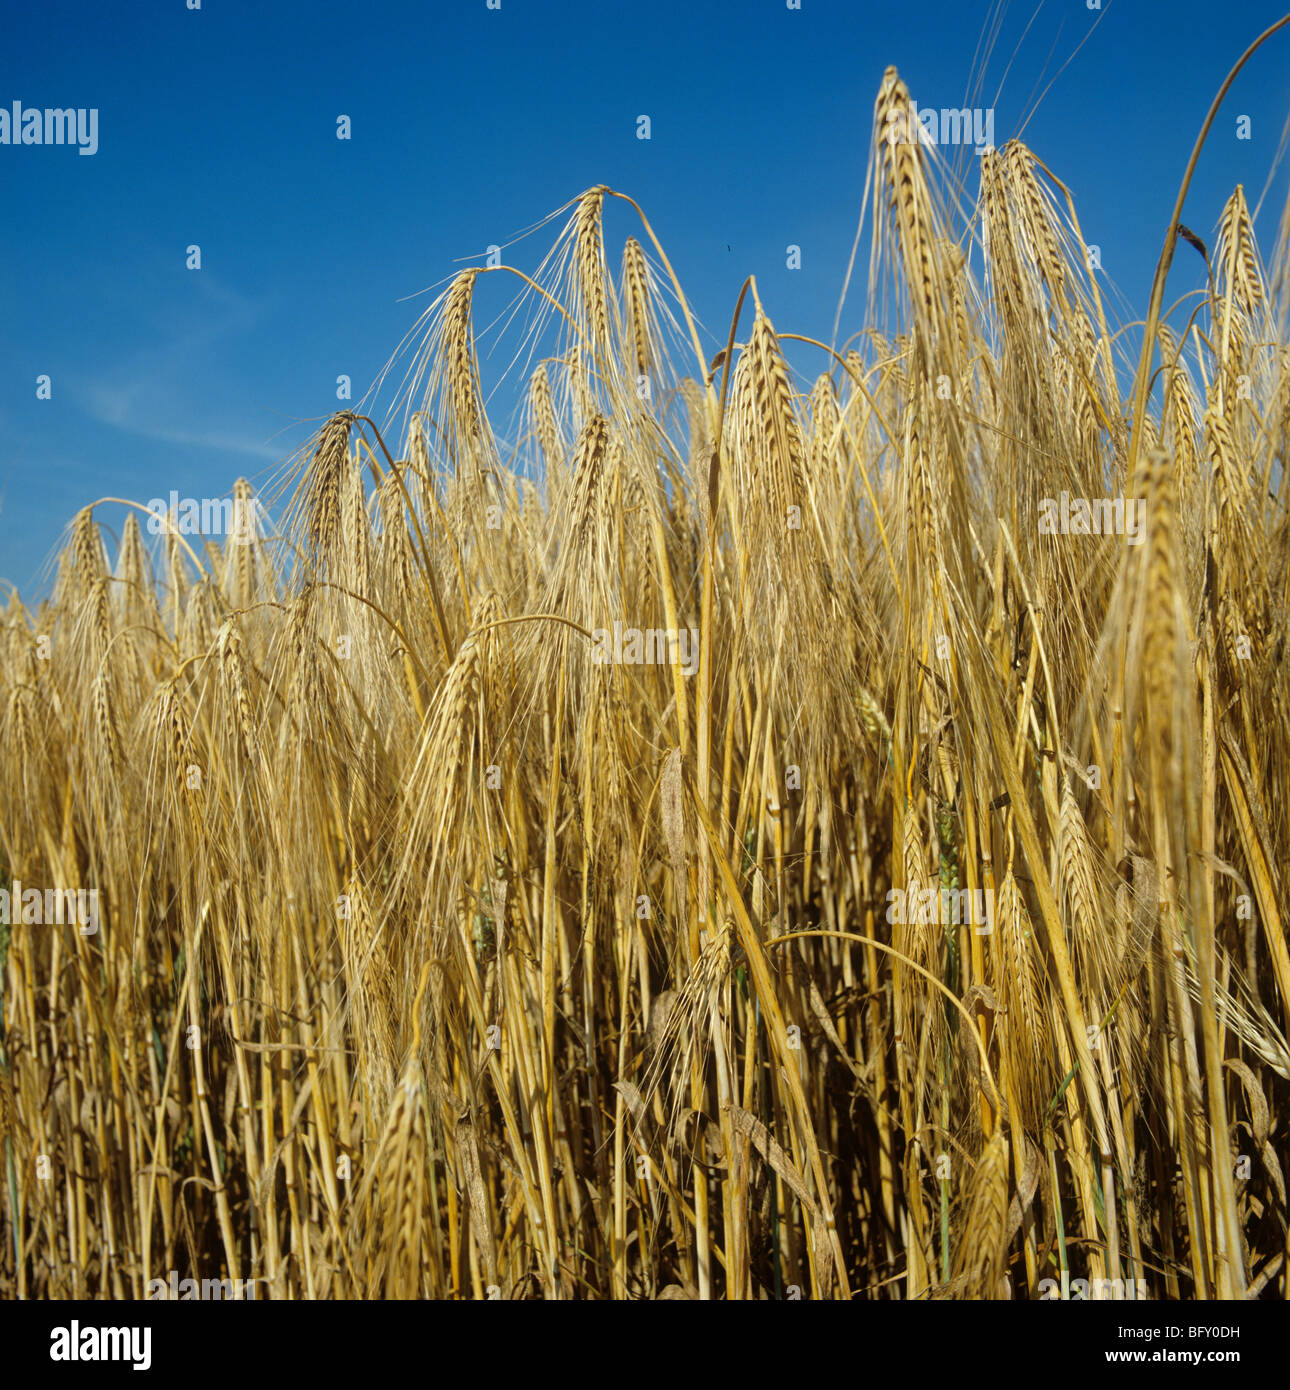 Ripe six row barley against an intense blue summer sky - Stock Image